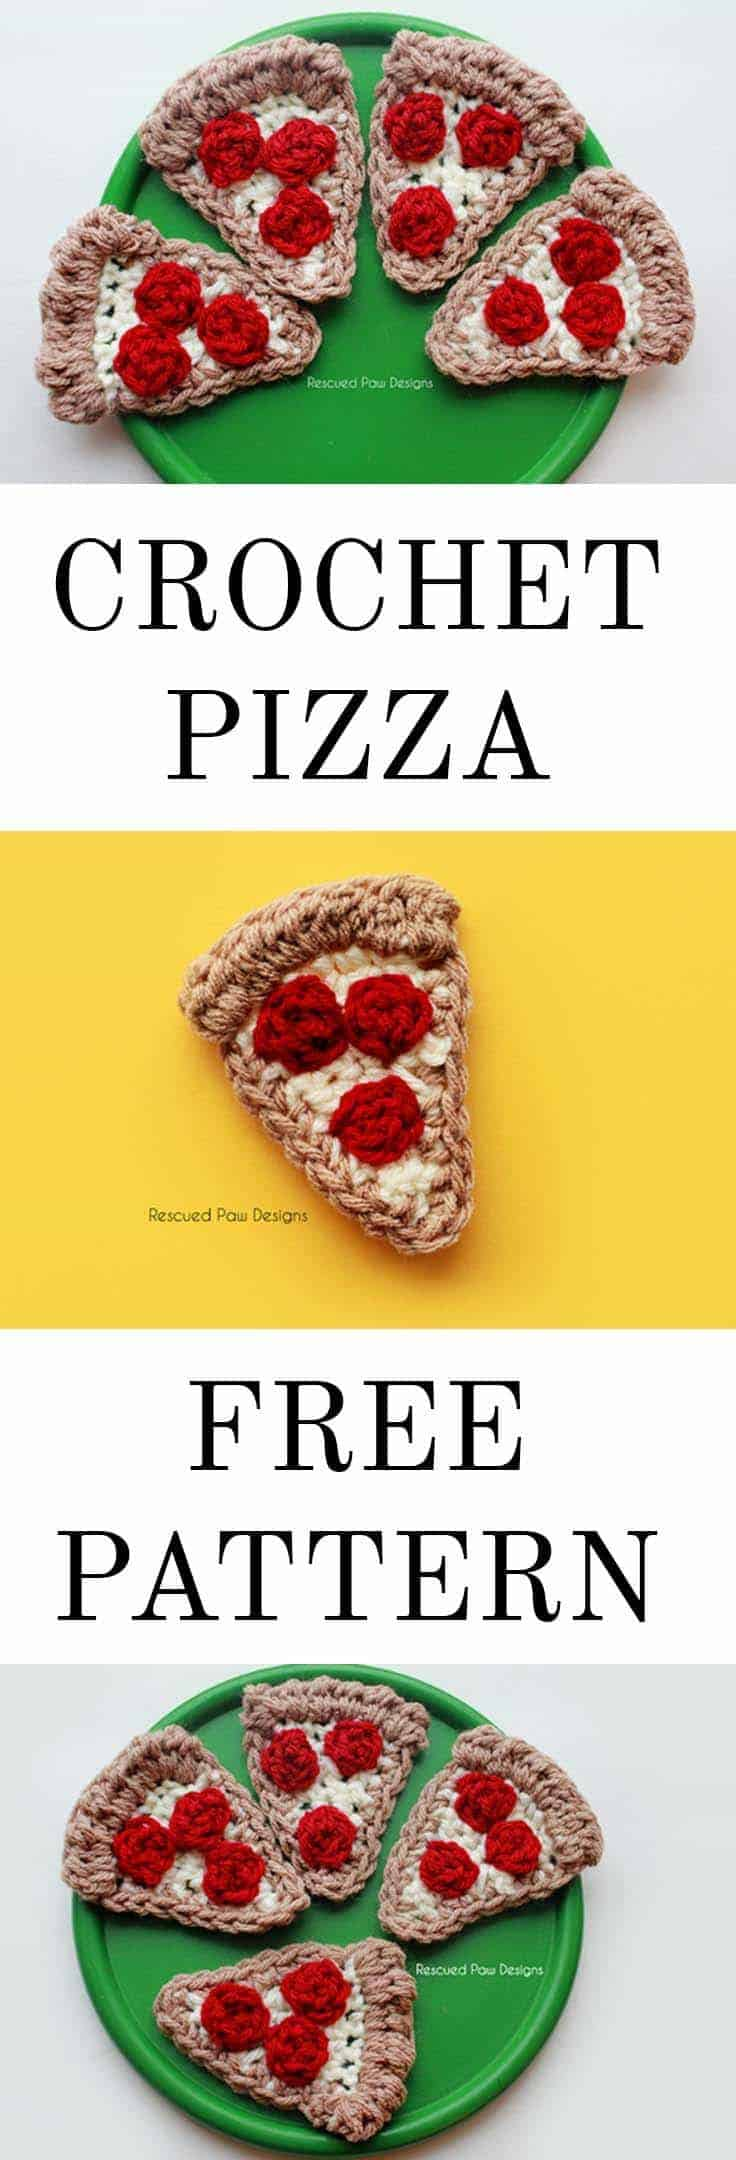 Crochet Pizza Applique